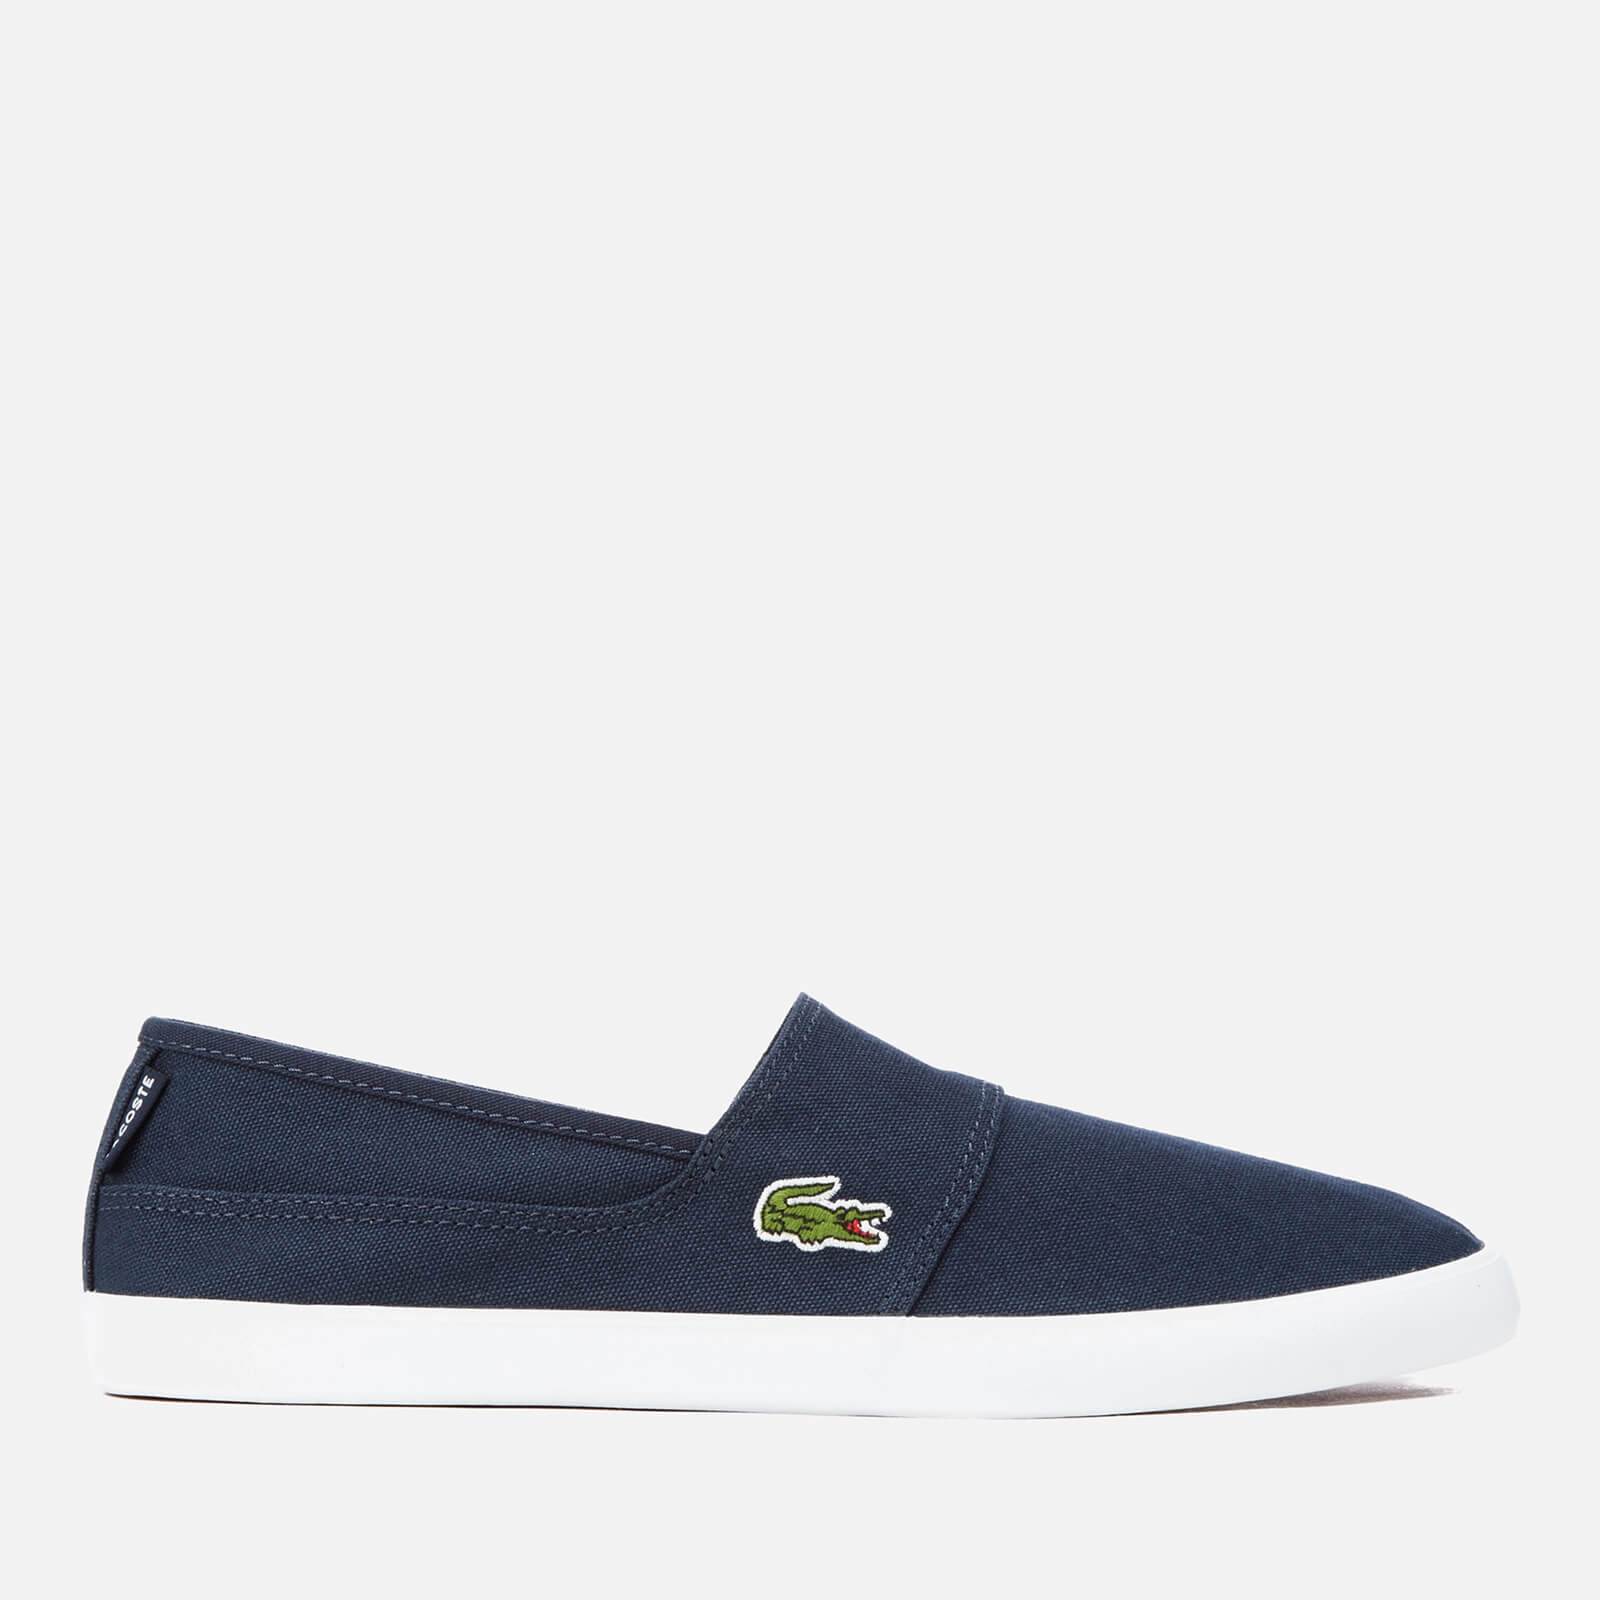 6156aae7be6c25 Lacoste Men's Marice Bl 2 Canvas Slip-On Pumps - Dark Blue/Dark Blue | FREE  UK Delivery | Allsole